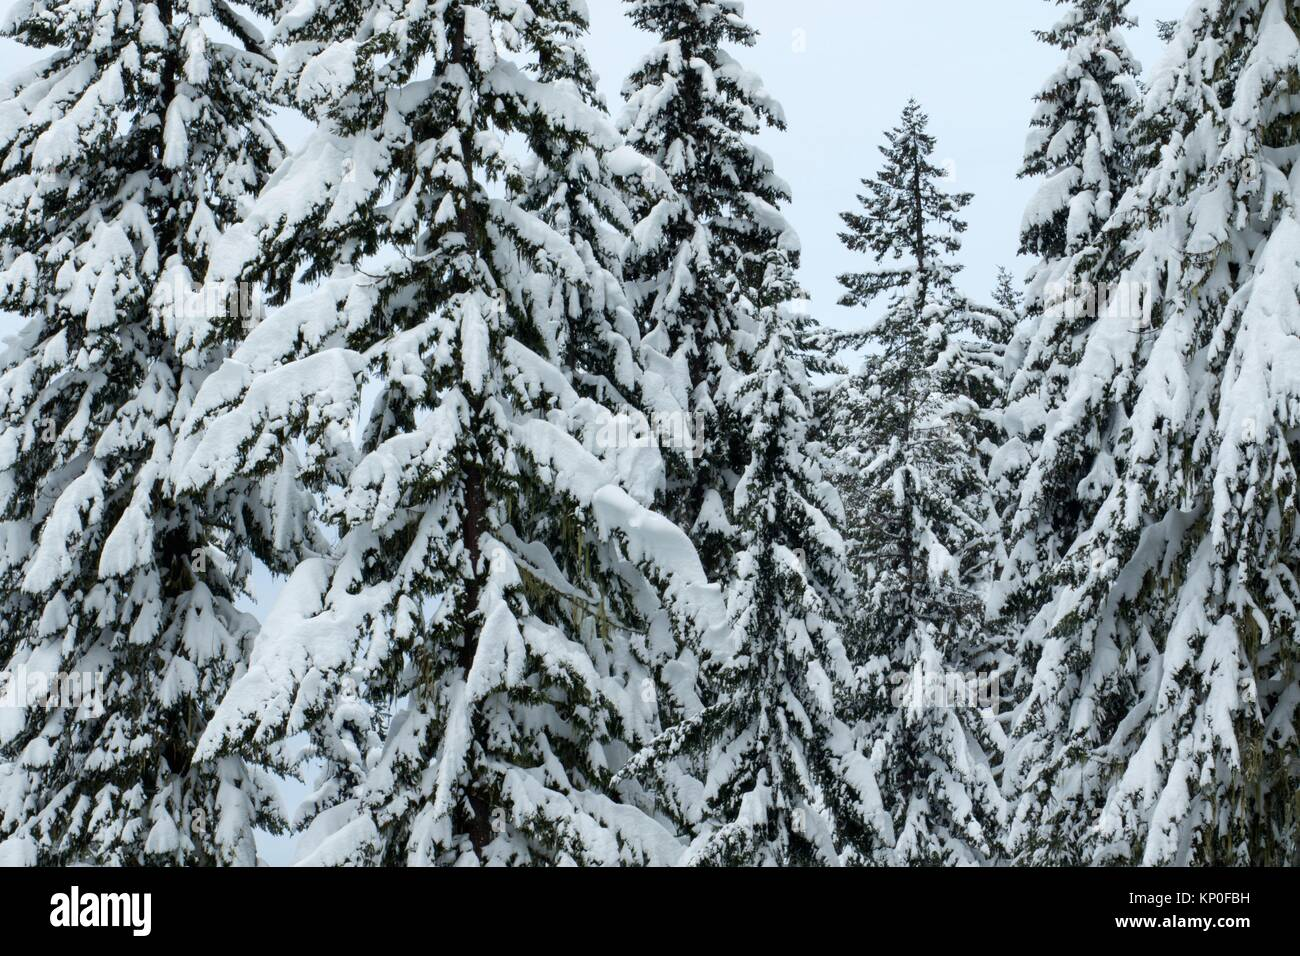 Winter forest at Waldo Lake sno-park, Willamette National Forest, Oregon. - Stock Image